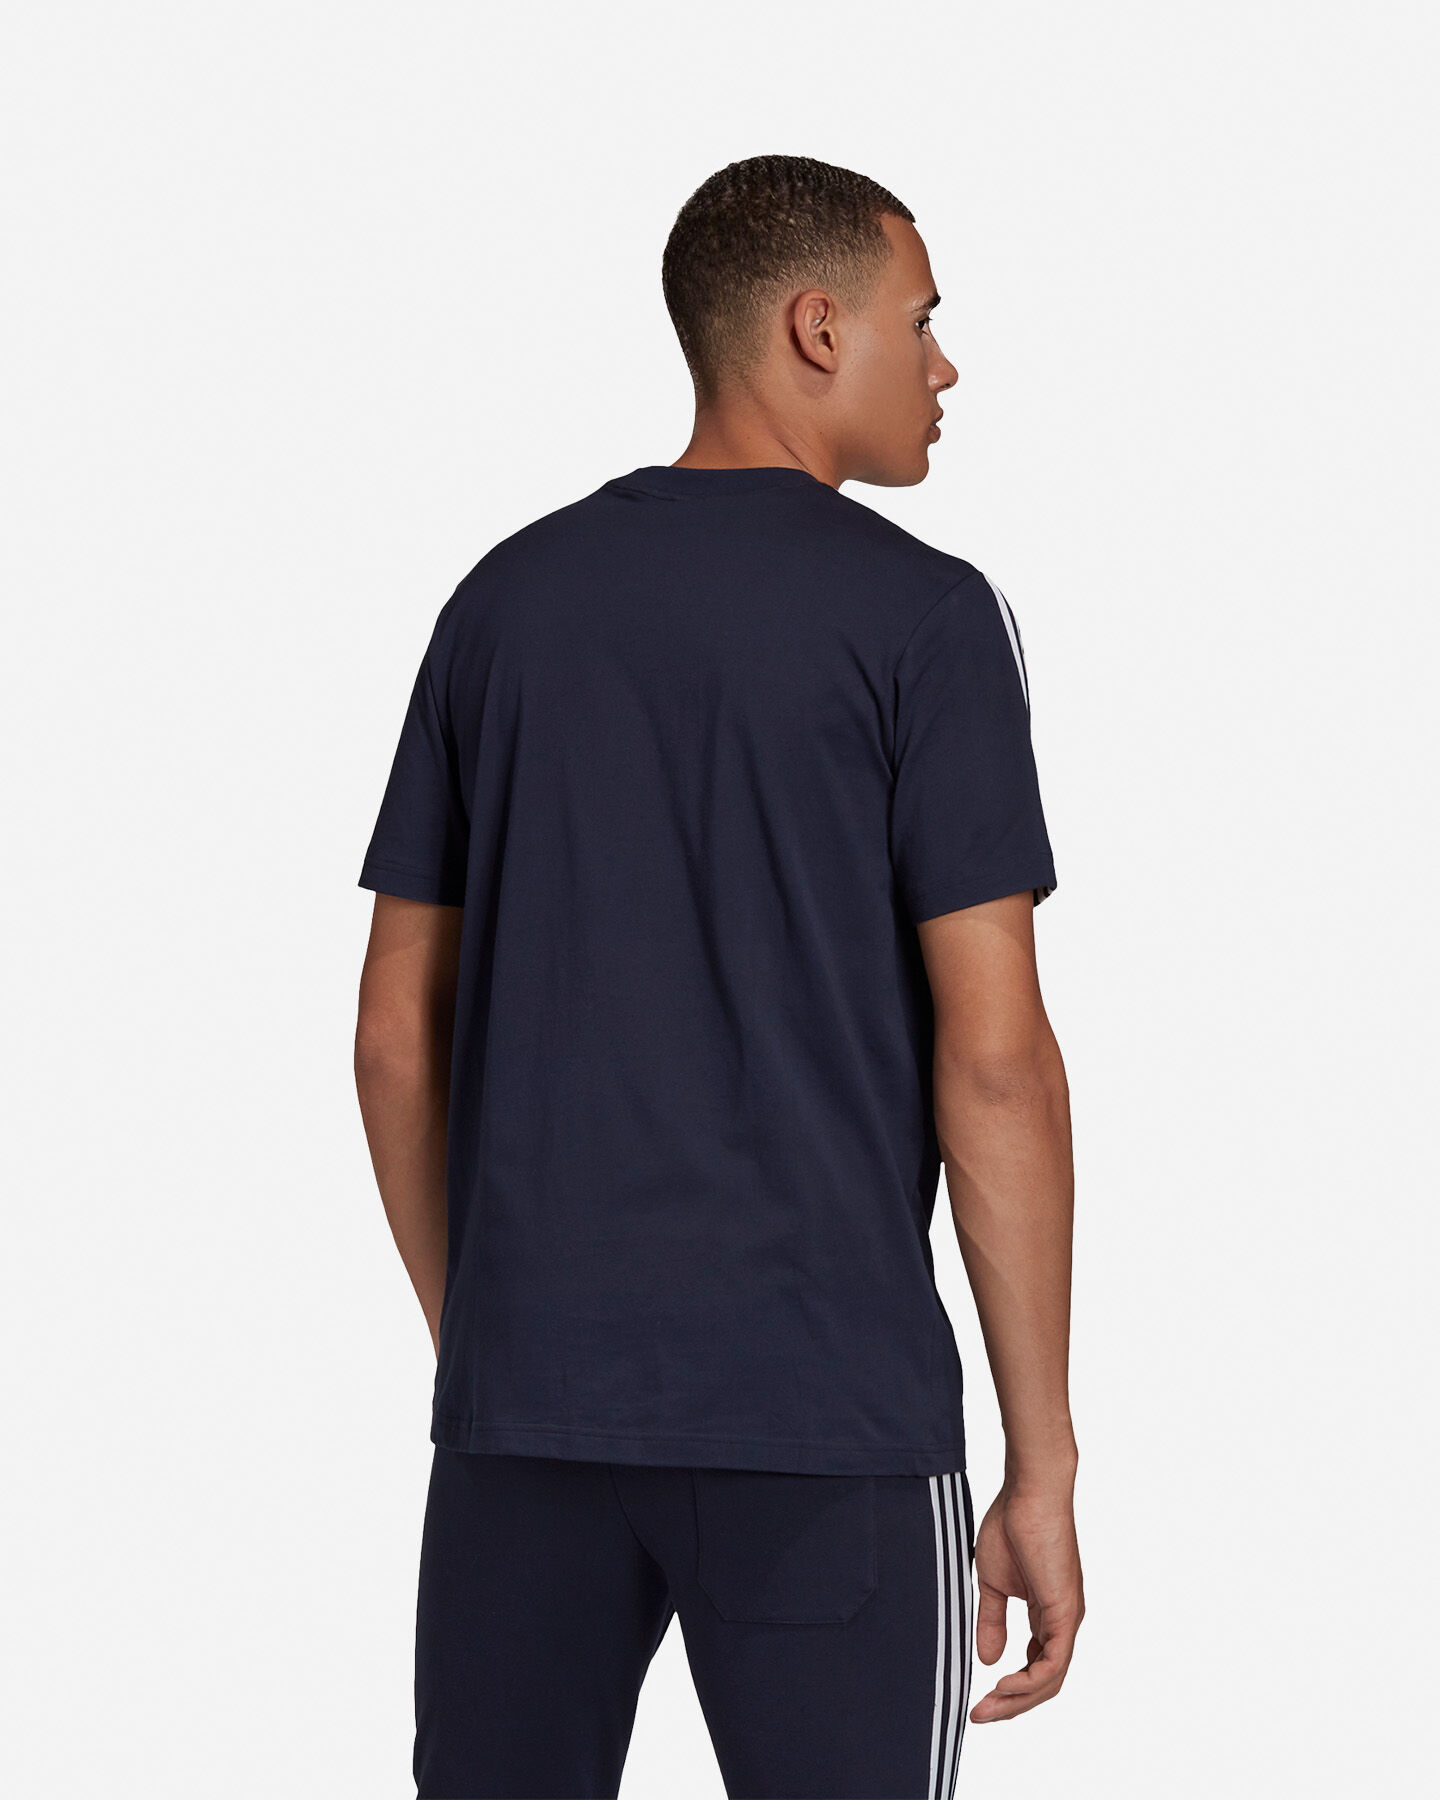 T-Shirt ADIDAS 3S TAPE M S5217933 scatto 4